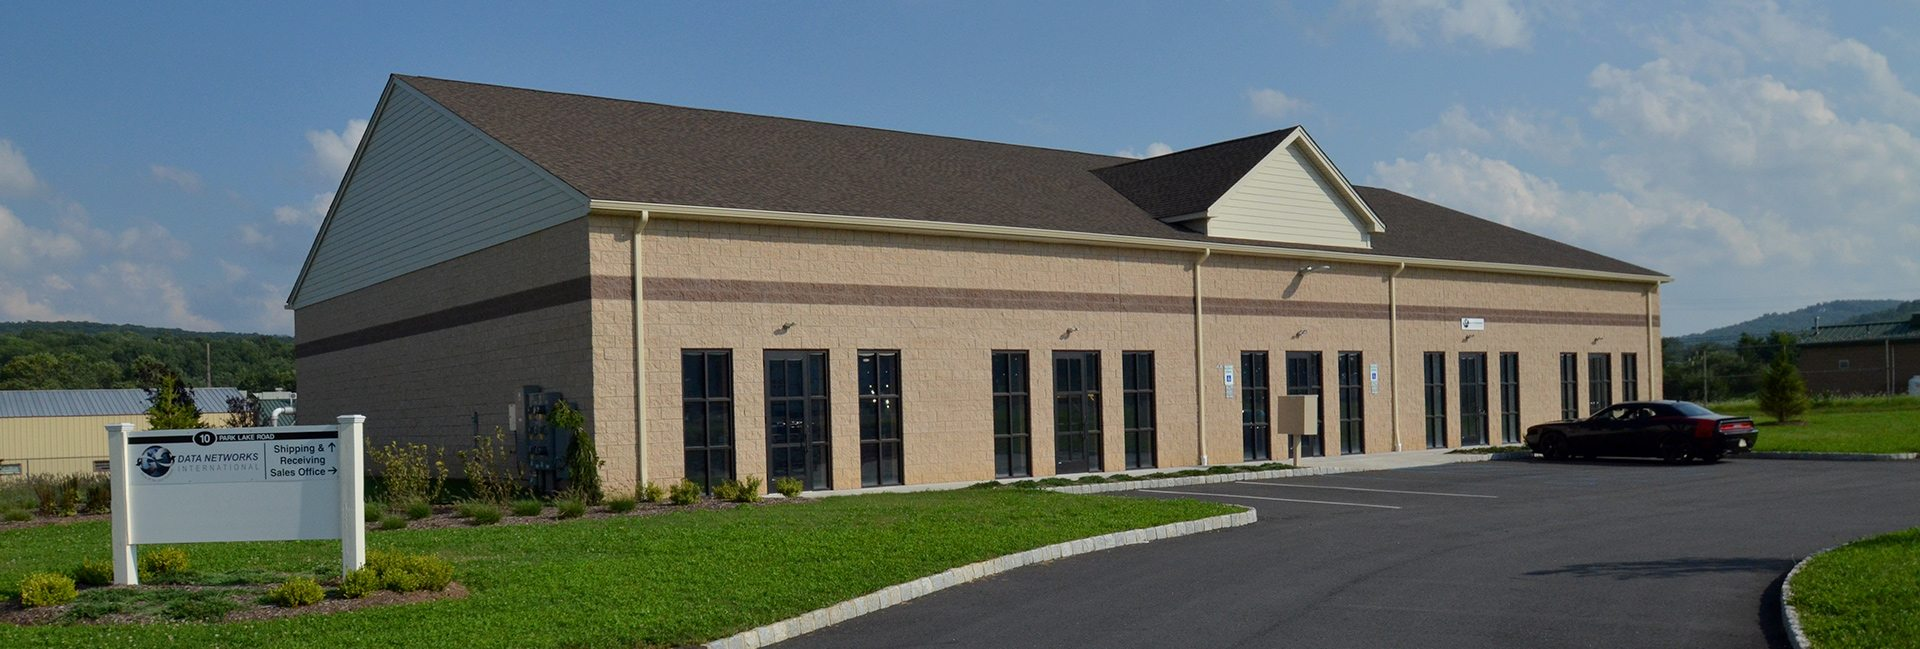 10 Park Lake Road - Industrial Park in Sparta NJ